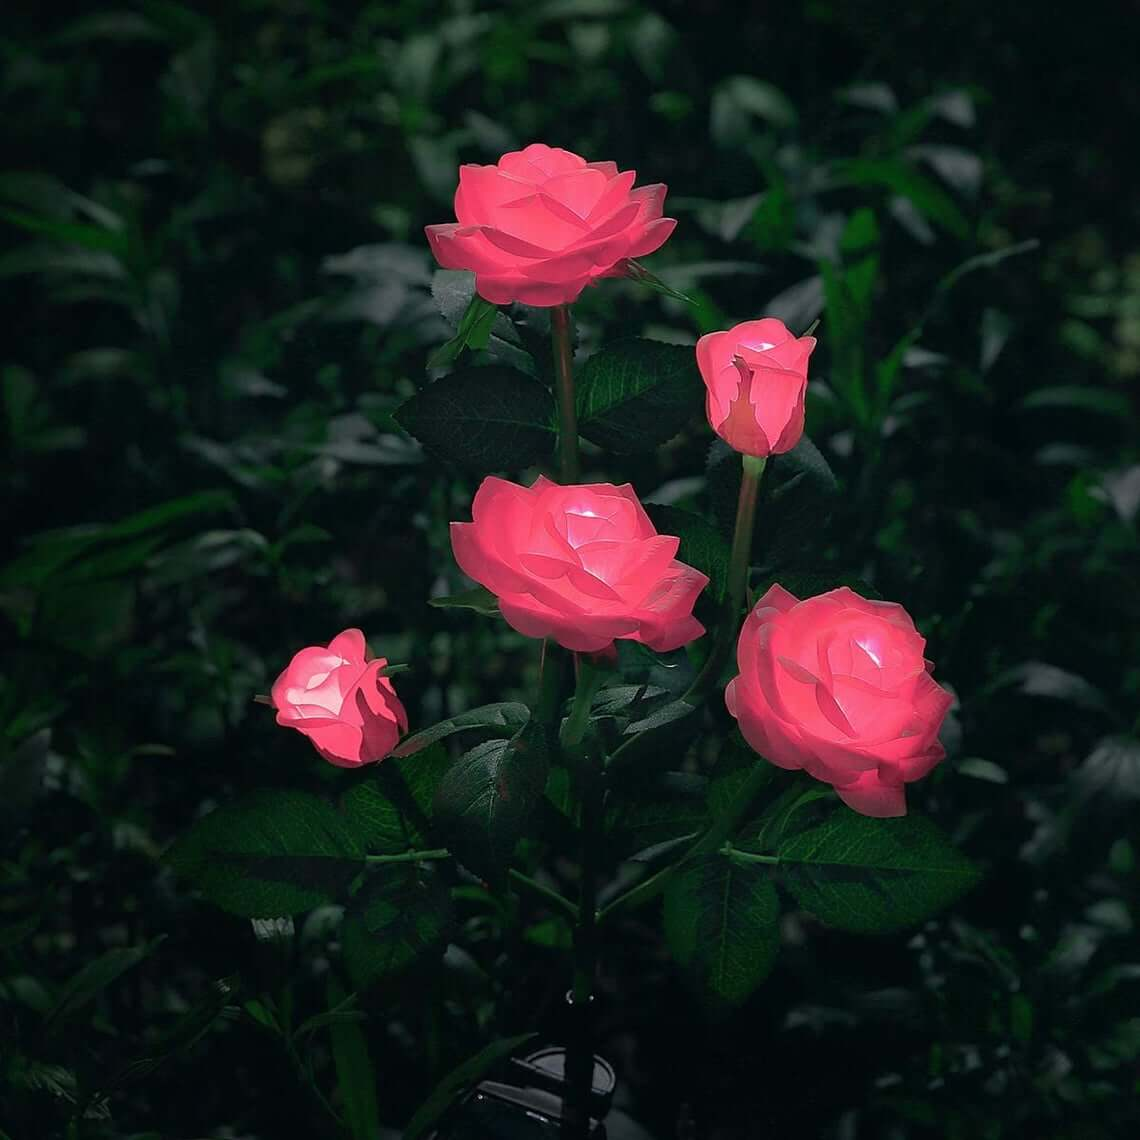 Light Up the Night with Solar Roses